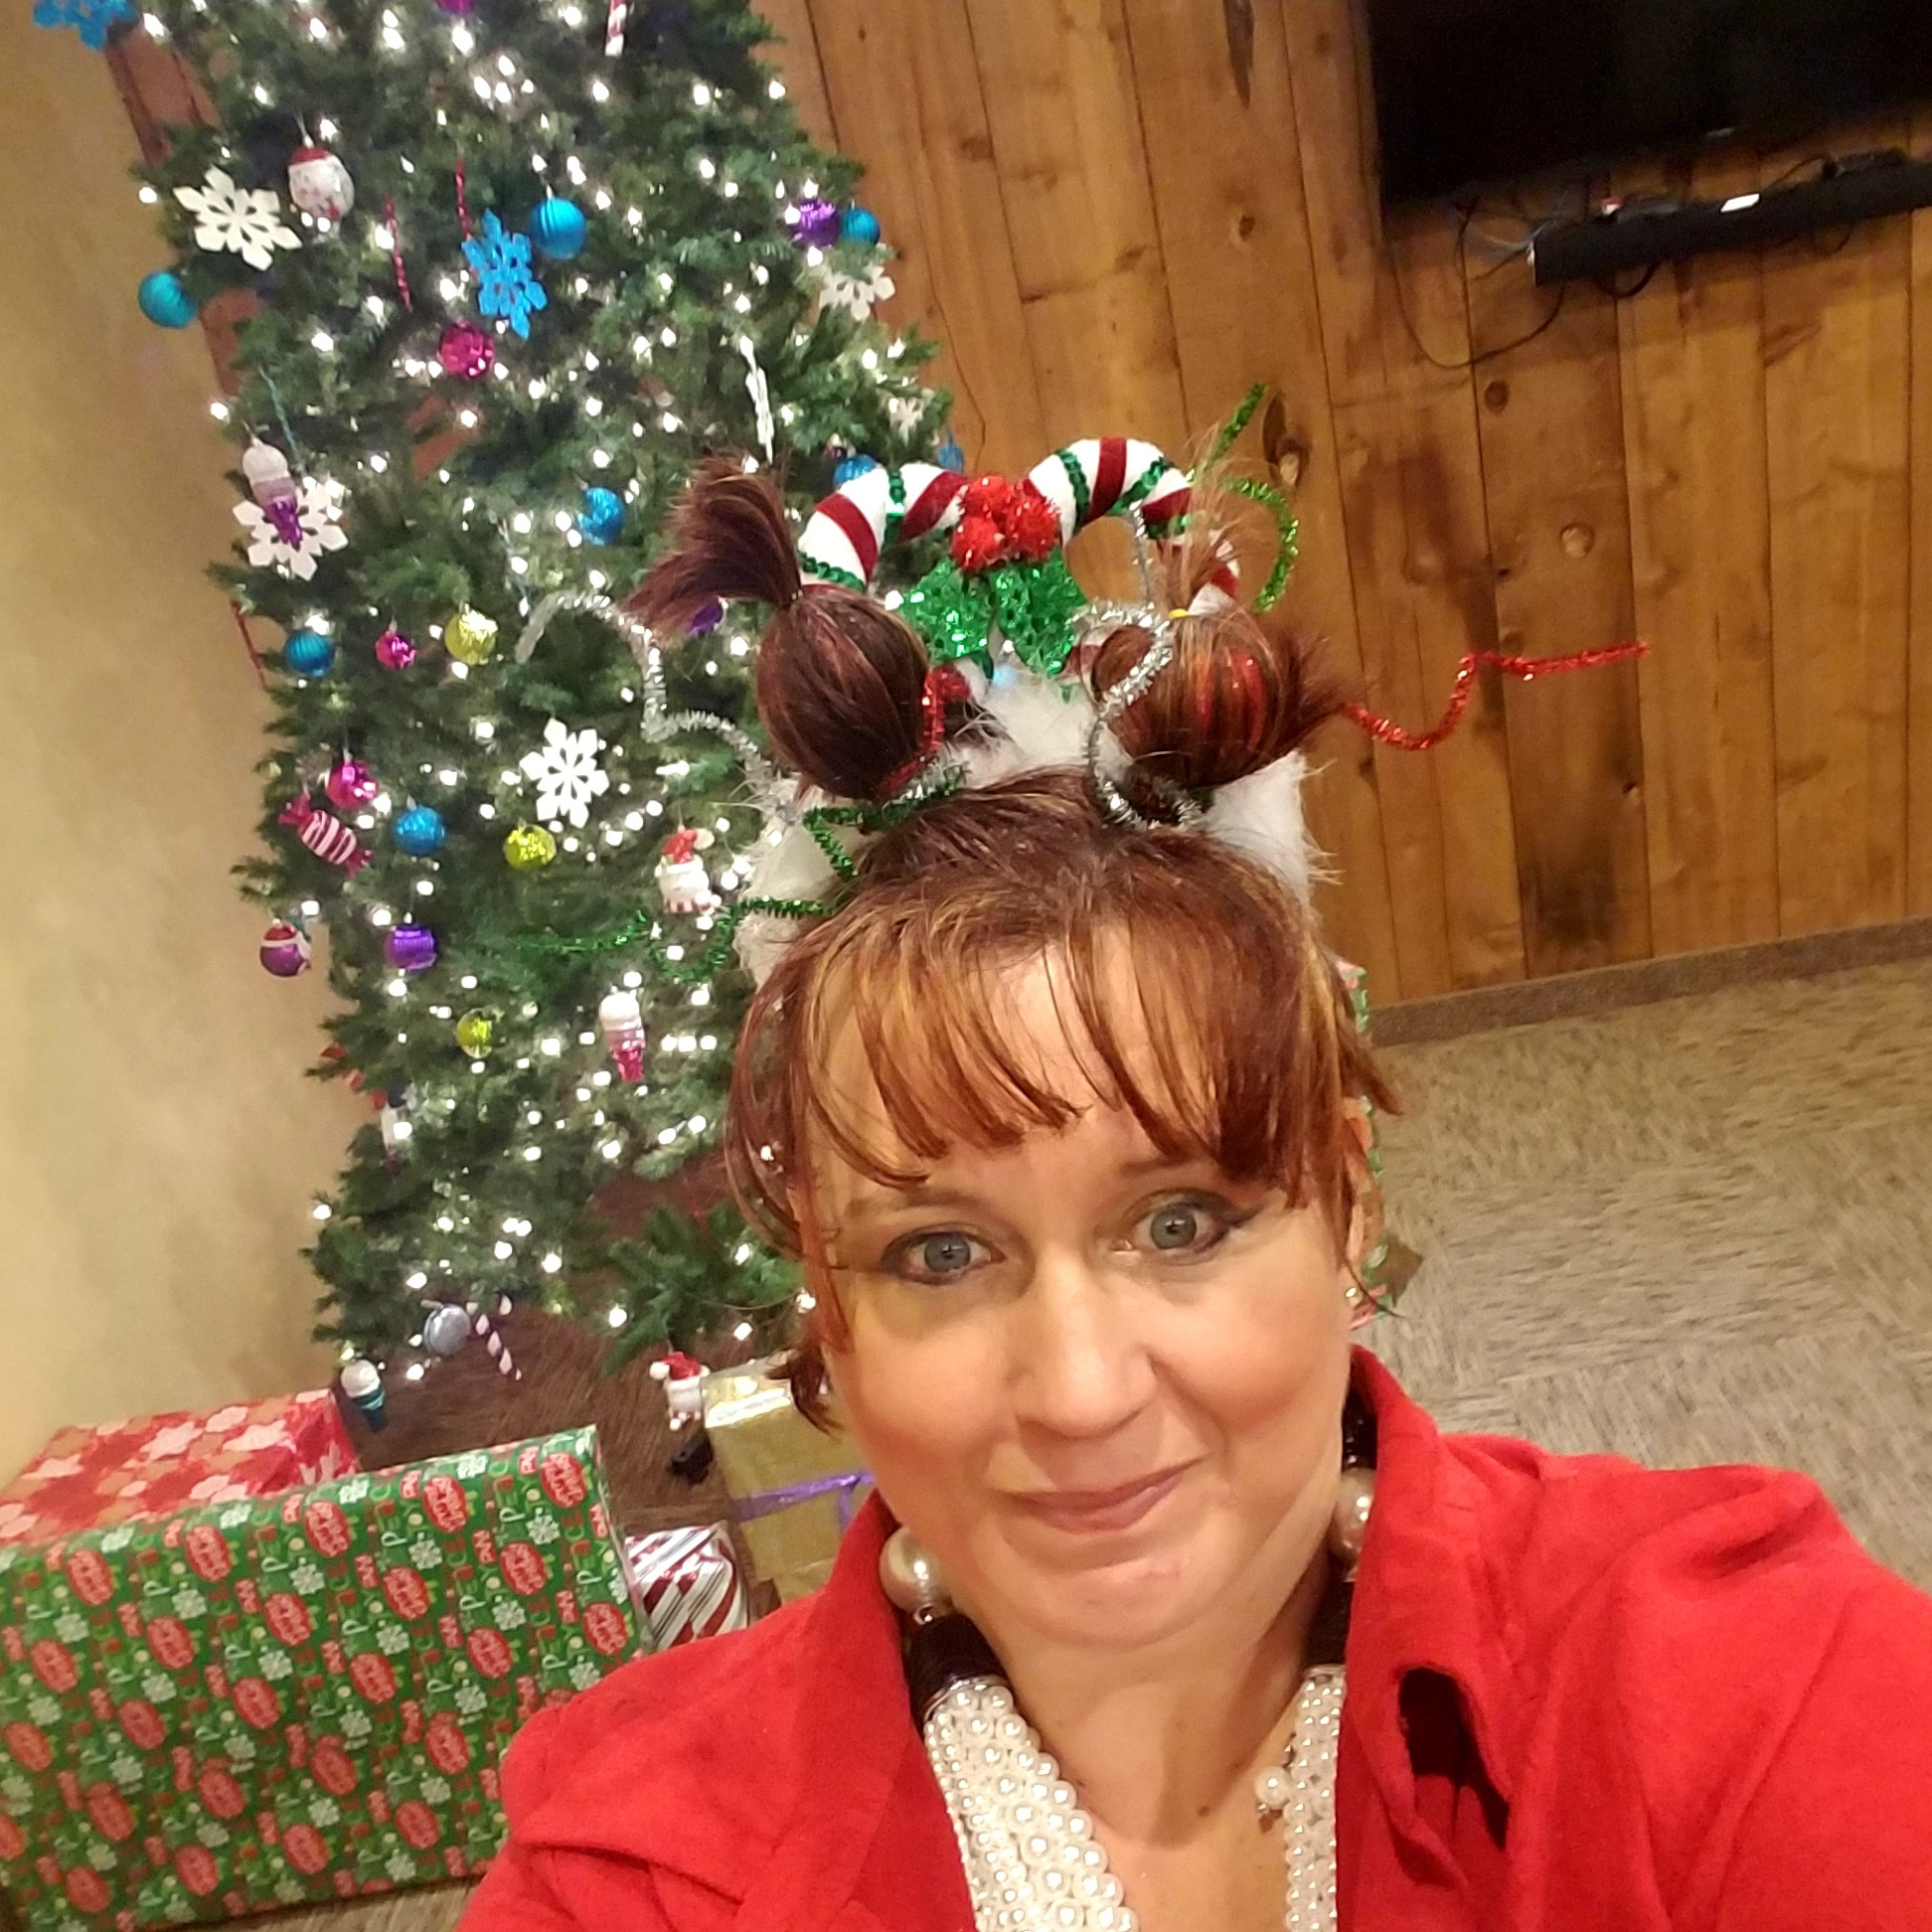 Tammey Brown's profile picture